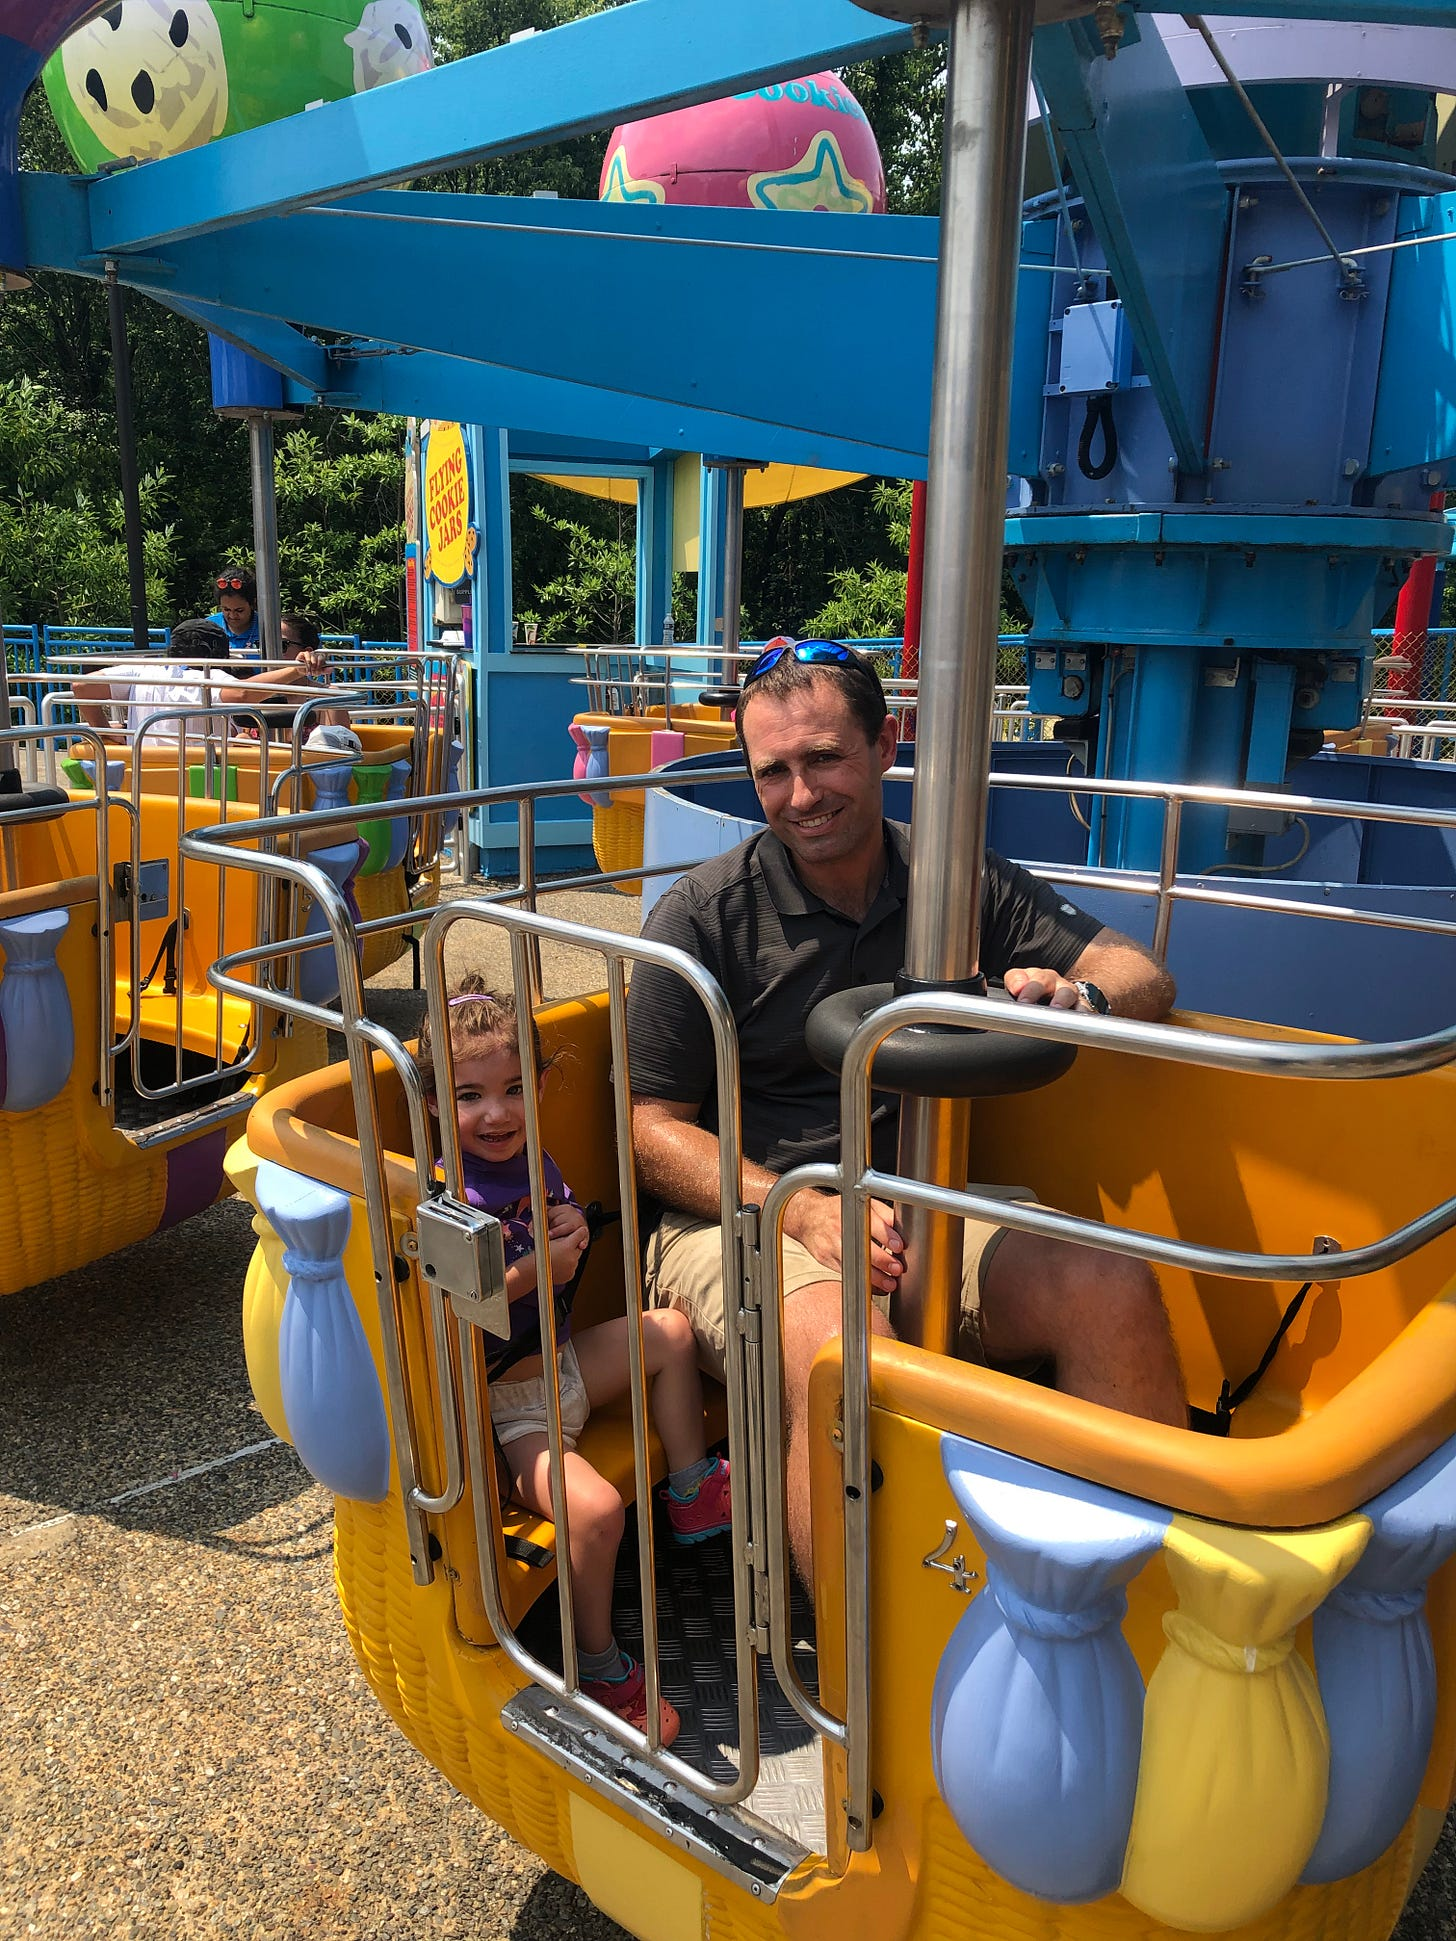 Photograph of Lila and Mark on a ride.  Lila is smiling.